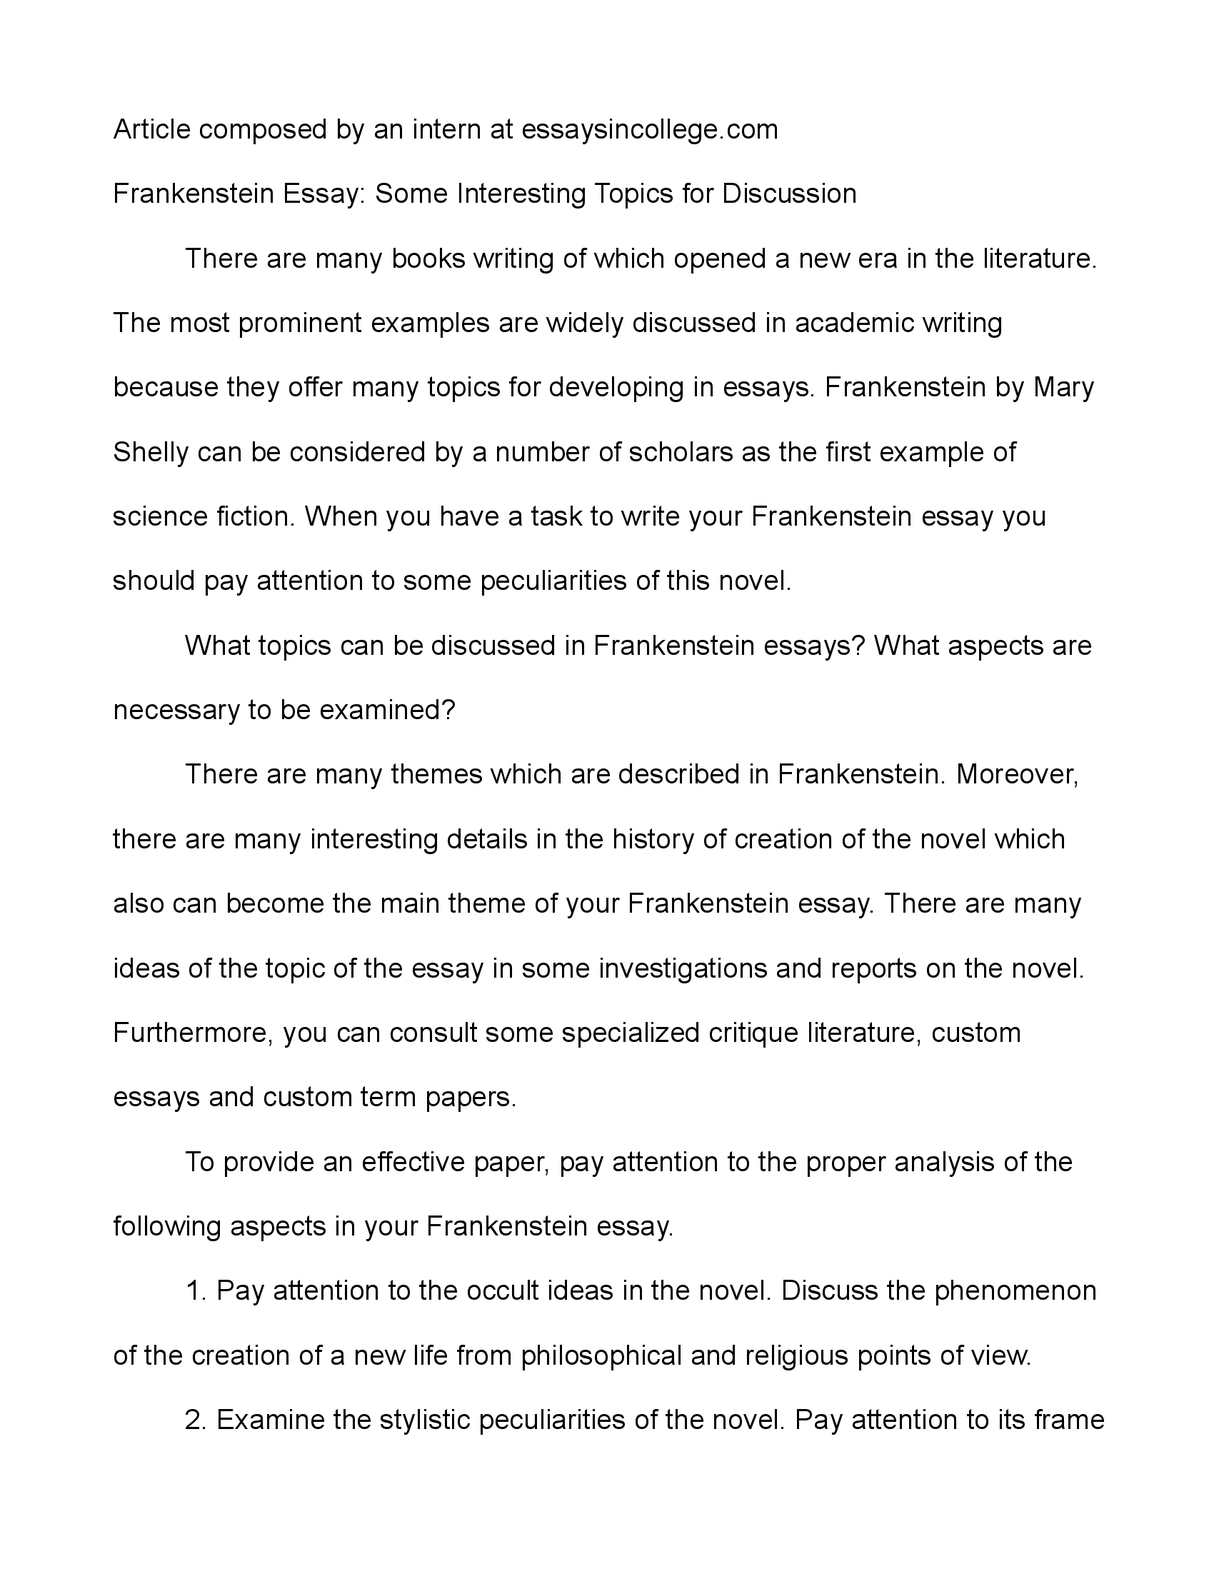 essay topics frankenstein essay topics frankenstein essay topics calamatildecopyo frankenstein essay some interesting topics for discussion